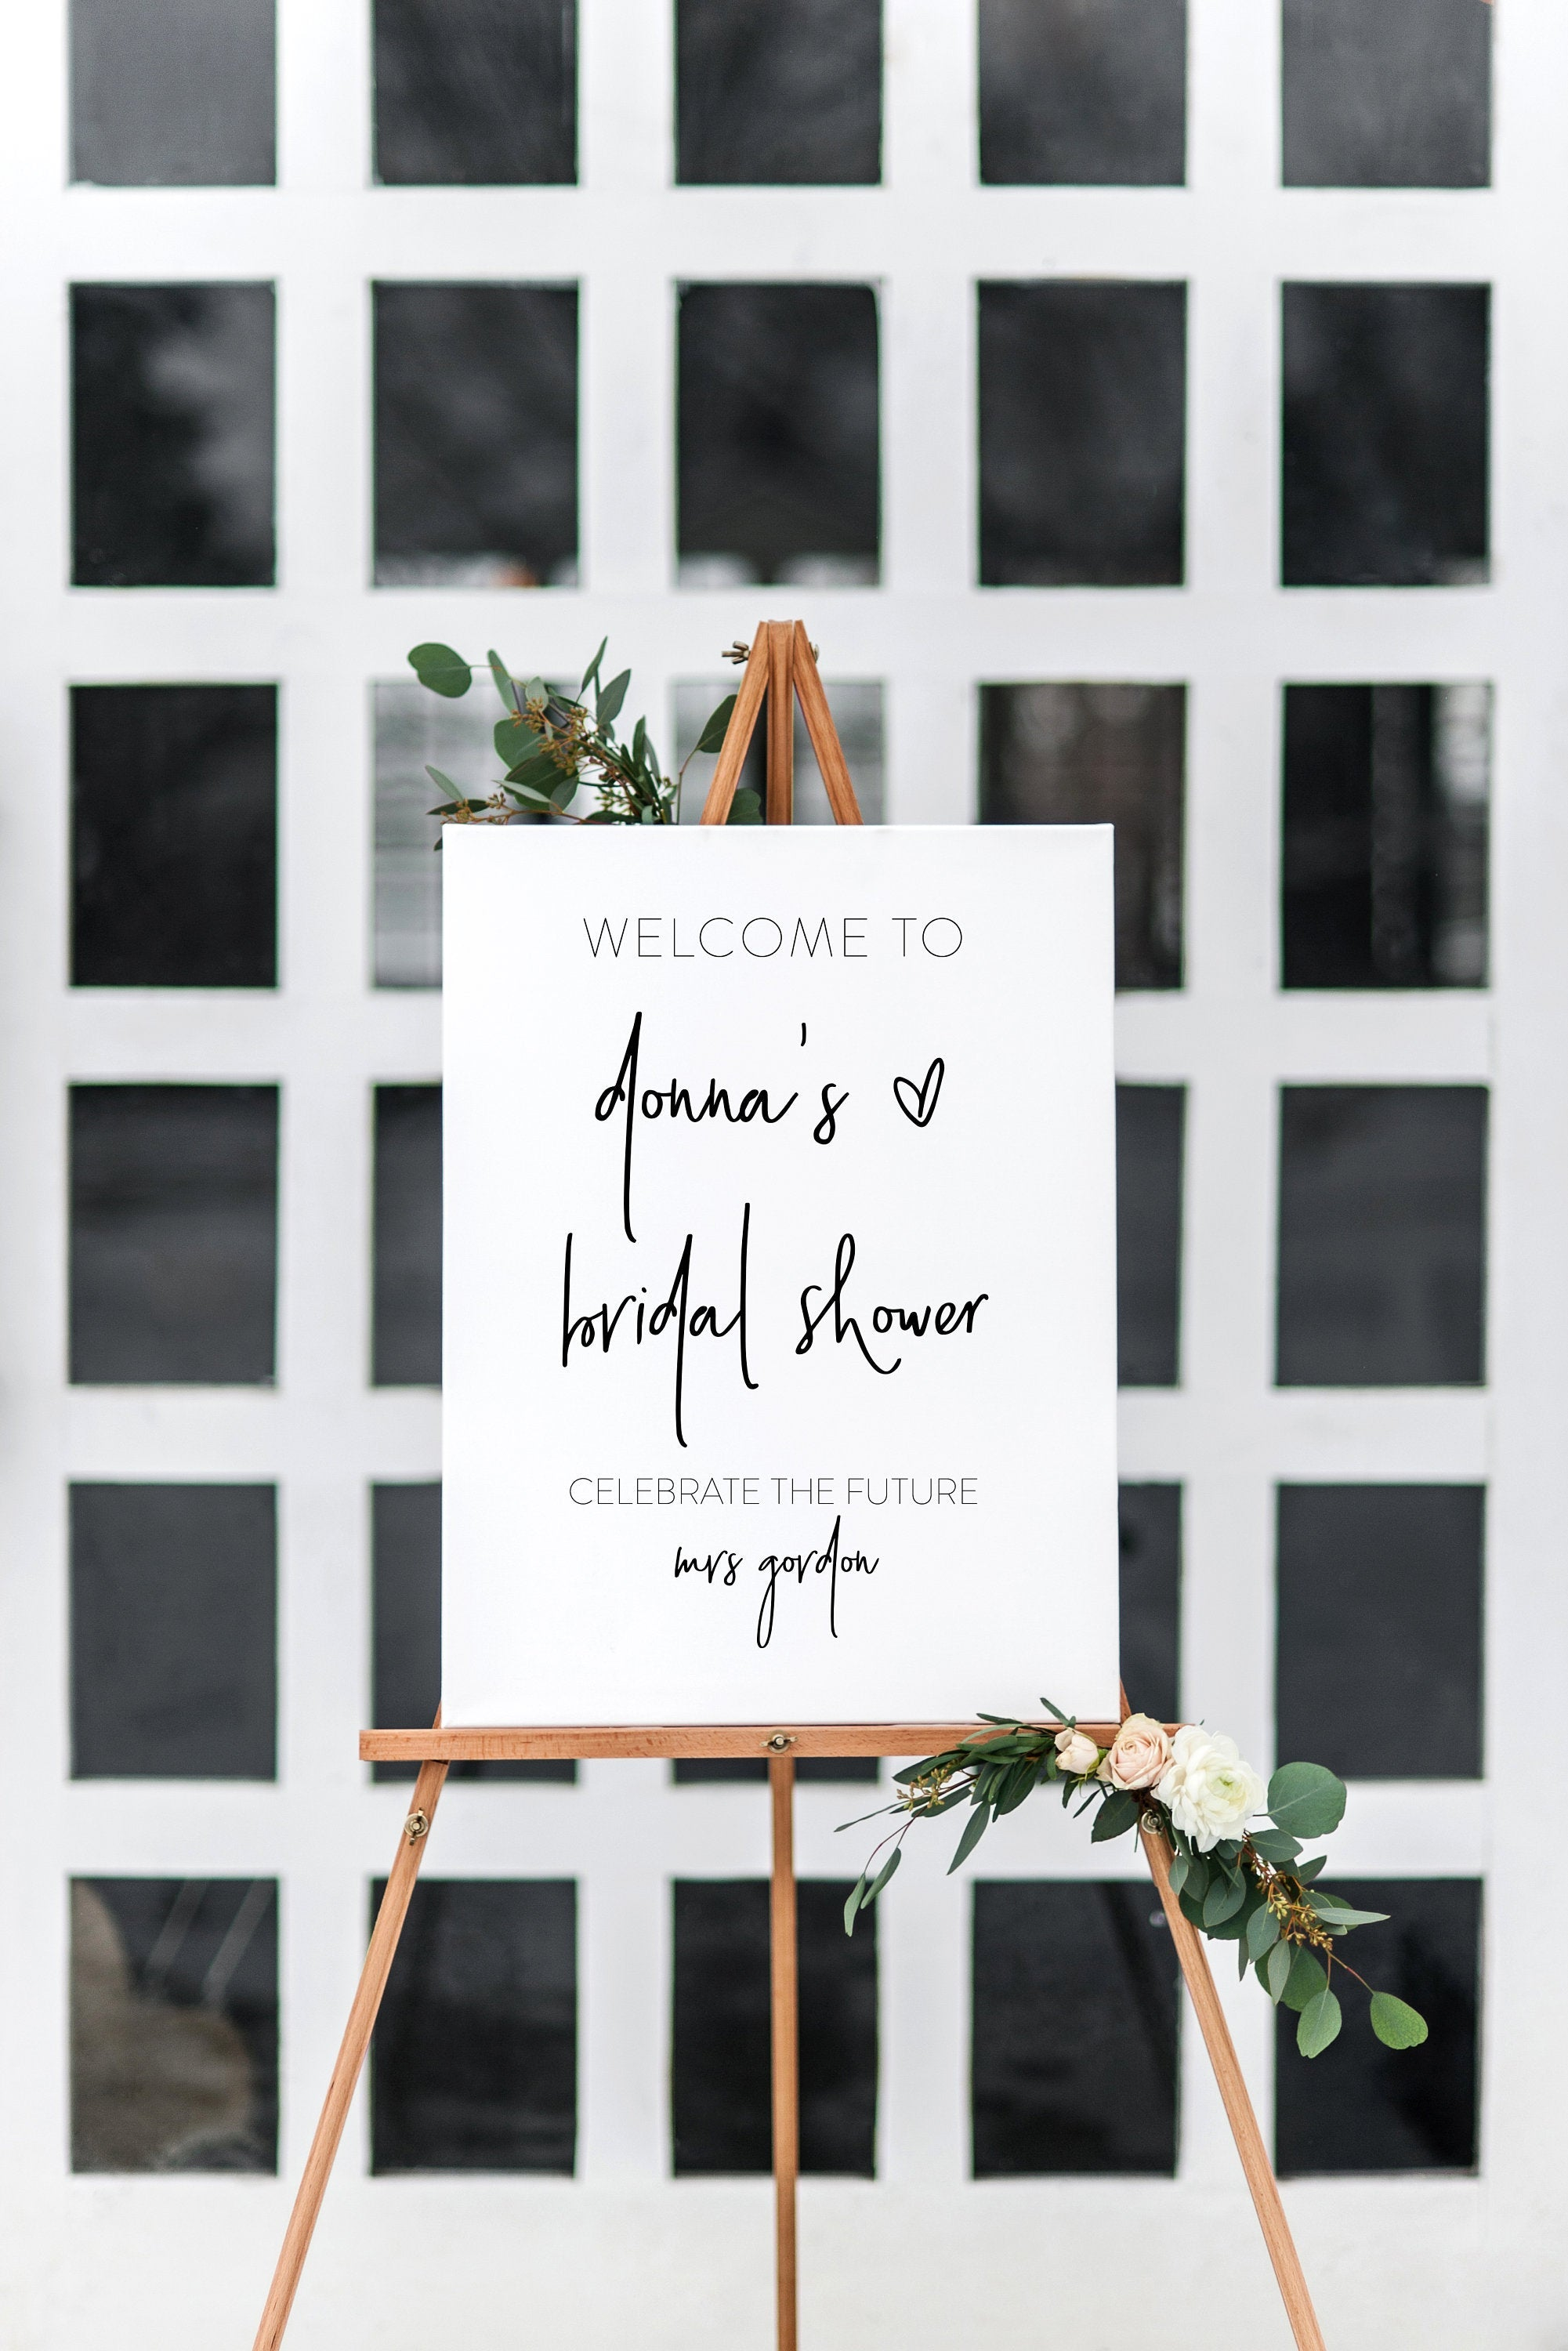 Printable Bridal Shower Welcome Sign Template Editable Instant Download Wedding Décor - DONNA